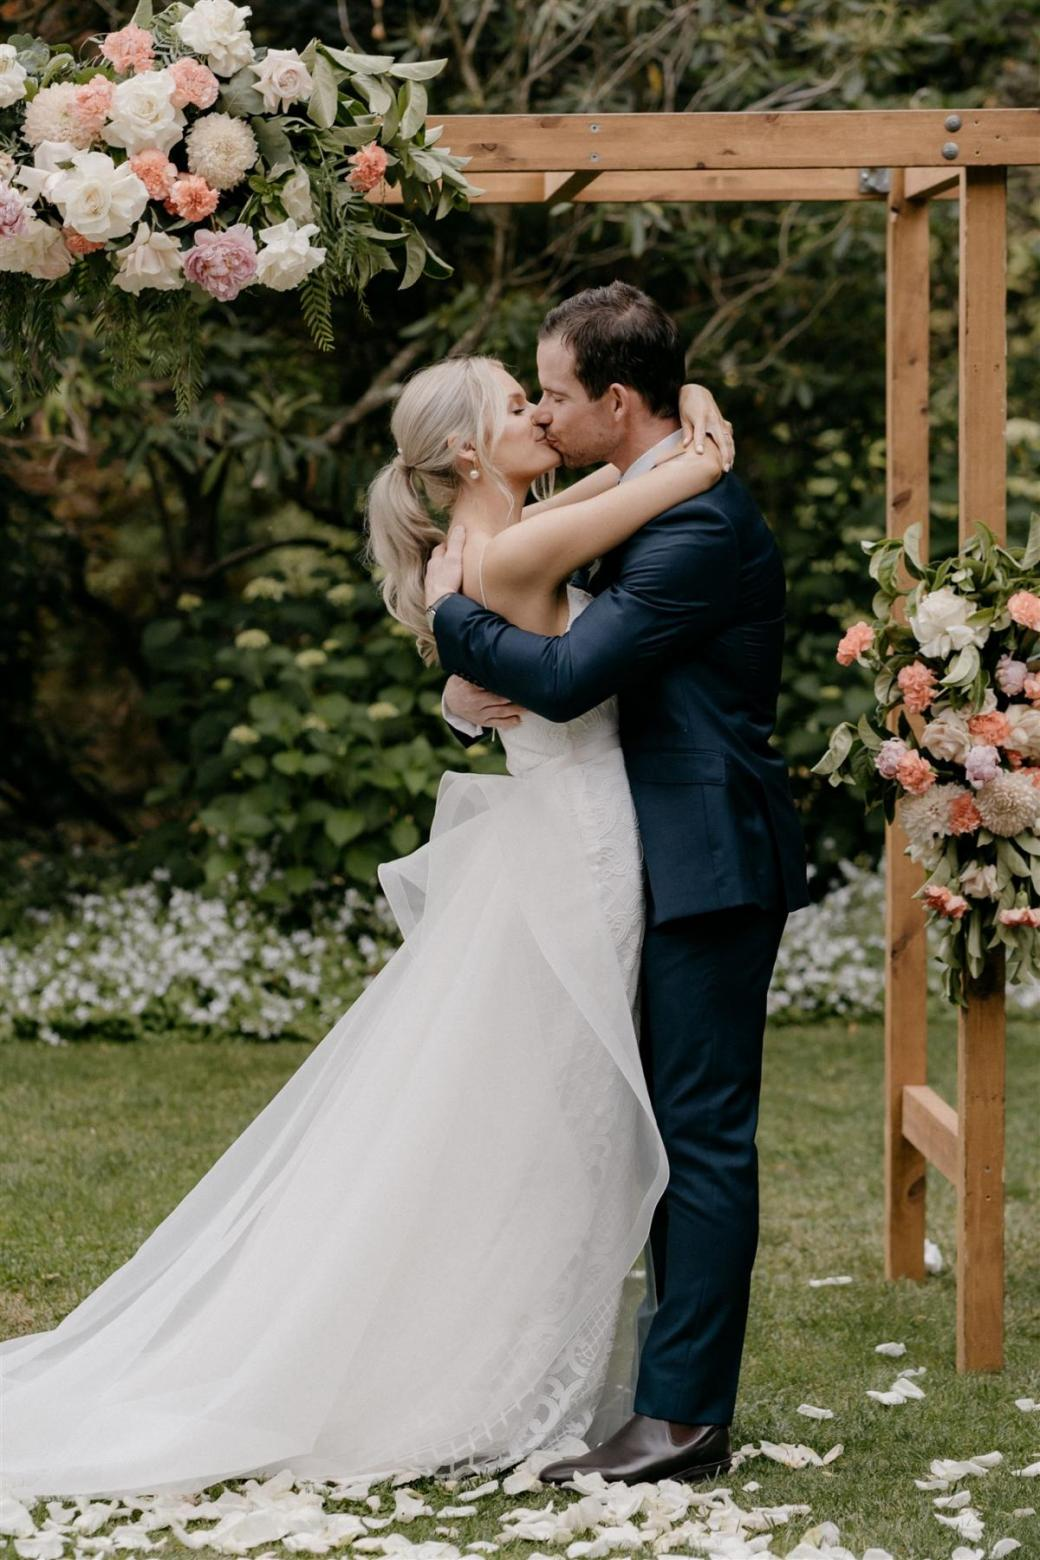 KWH bride Ashleigh and Adrian sharing a kiss at their country wedding; Ashleigh wears the dramatic Oval Trains with her Elodie gown by Karen Willis Holmes for ceremony look.